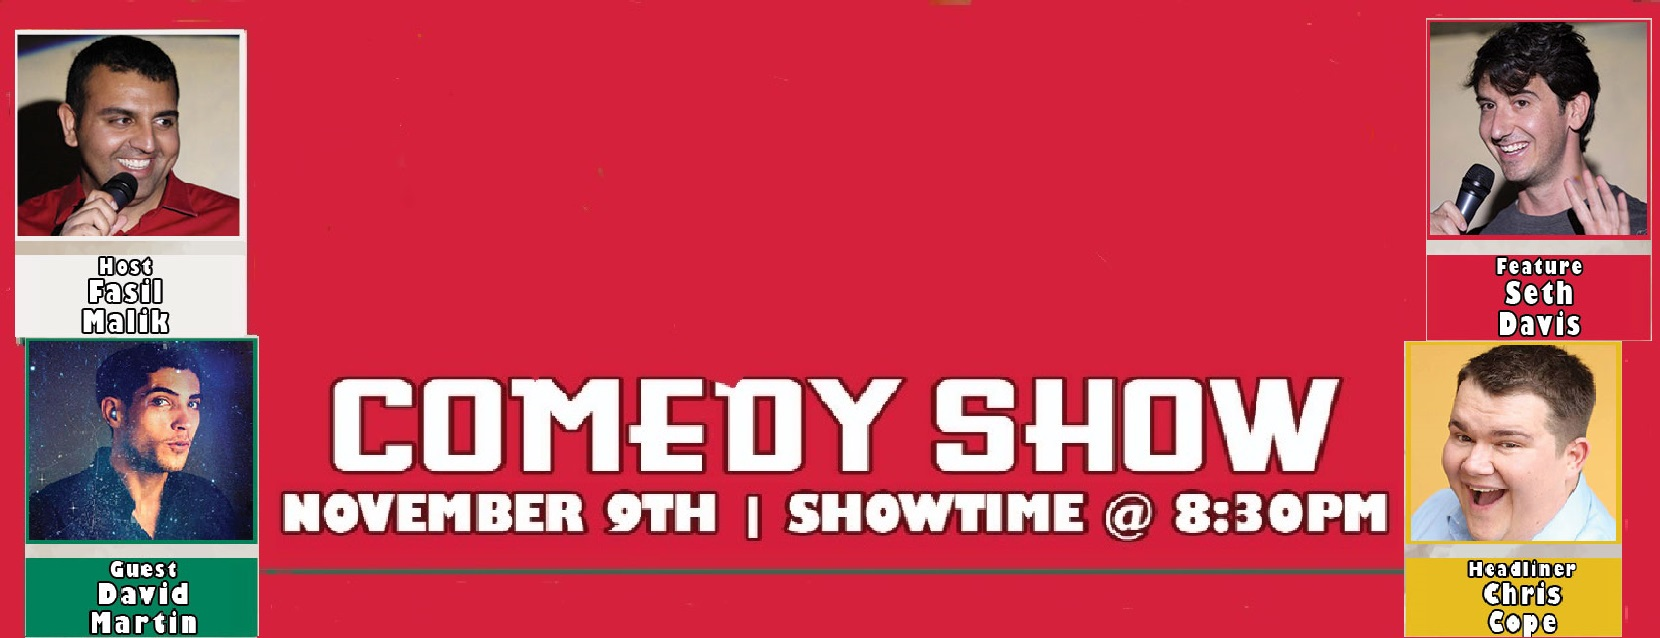 A flyer of a comedy show on November 9th 2018 with a showtime of 8:30 PM. The comedy is at Mama Jennies Italian Restaurant located at 11720 NE 2nd Ave Miami, FL 33161. It is hosted by Fasil Malik with a line up including headliner Chris Cope, feature Seth Davis, and guest David Martin.